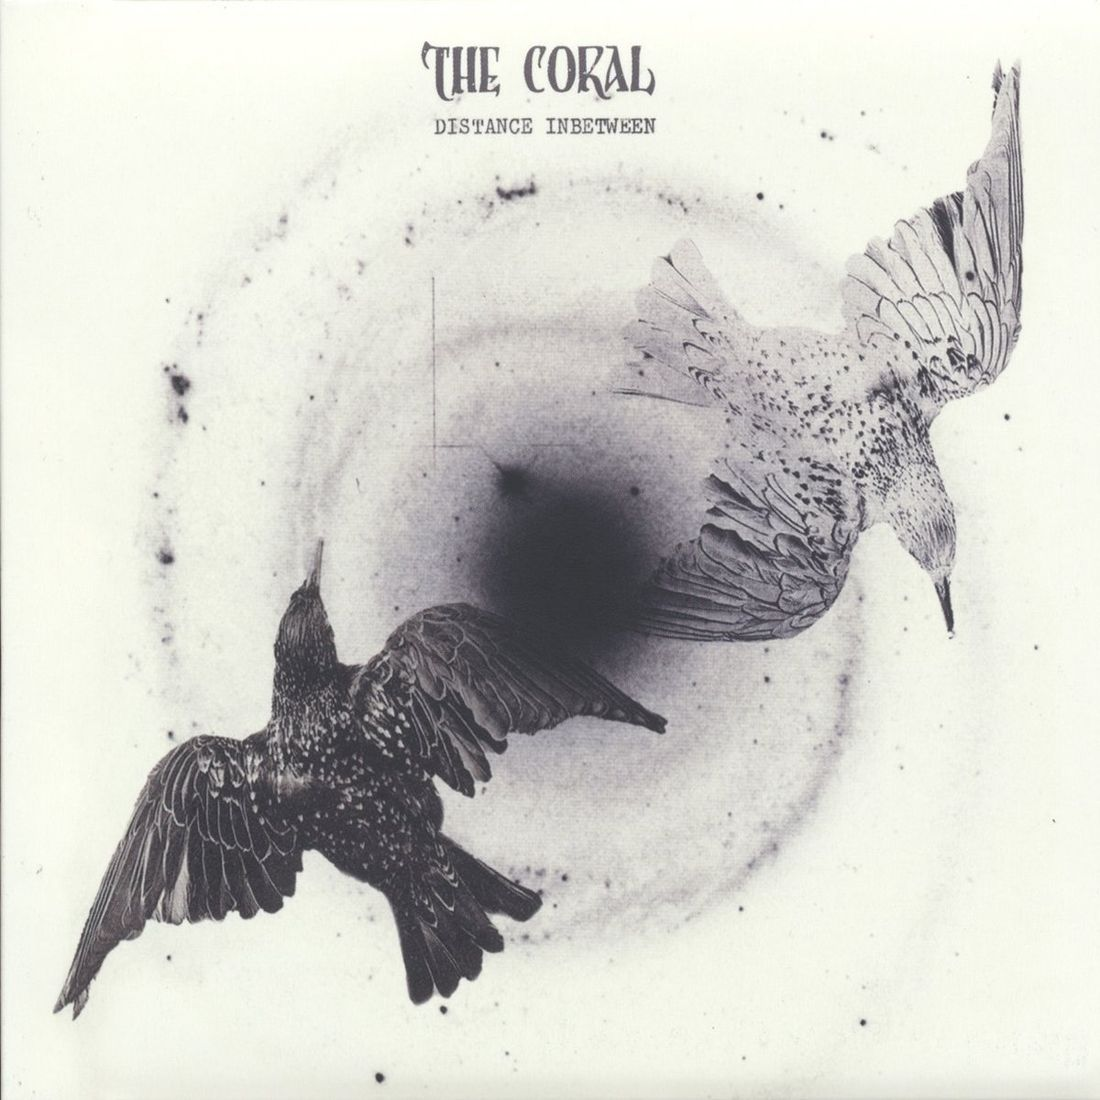 Distance In Between The Coral